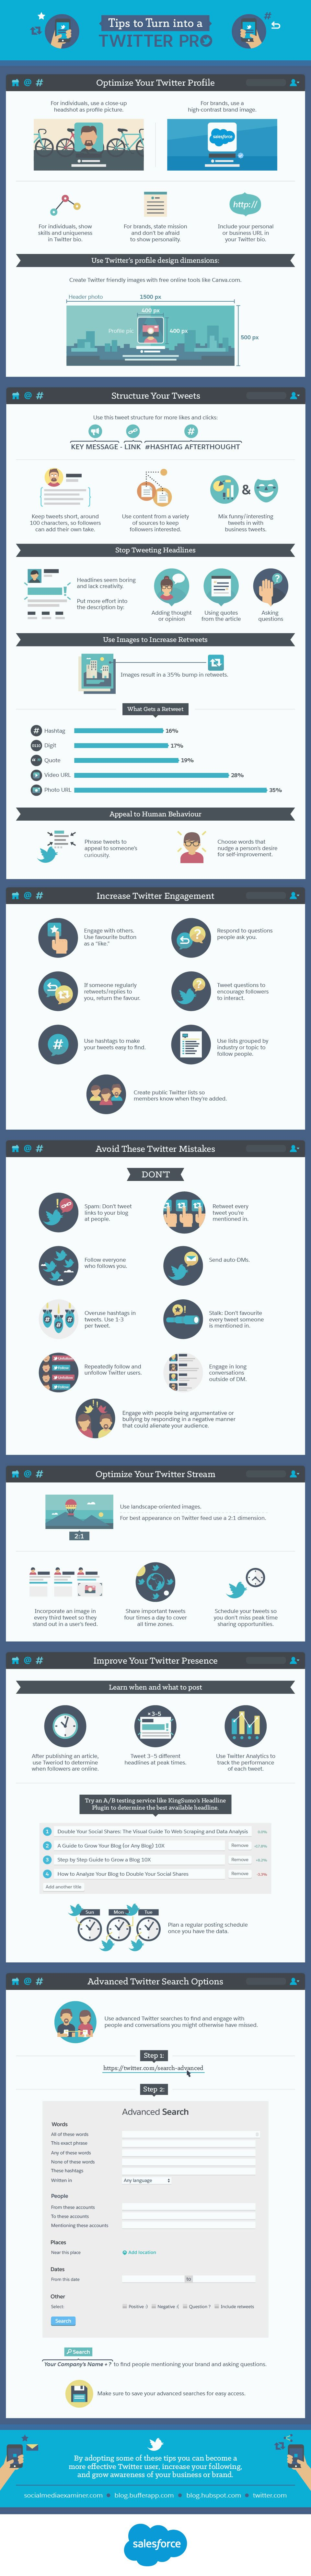 Tips to Turn Into a Twitter Pro #infographic